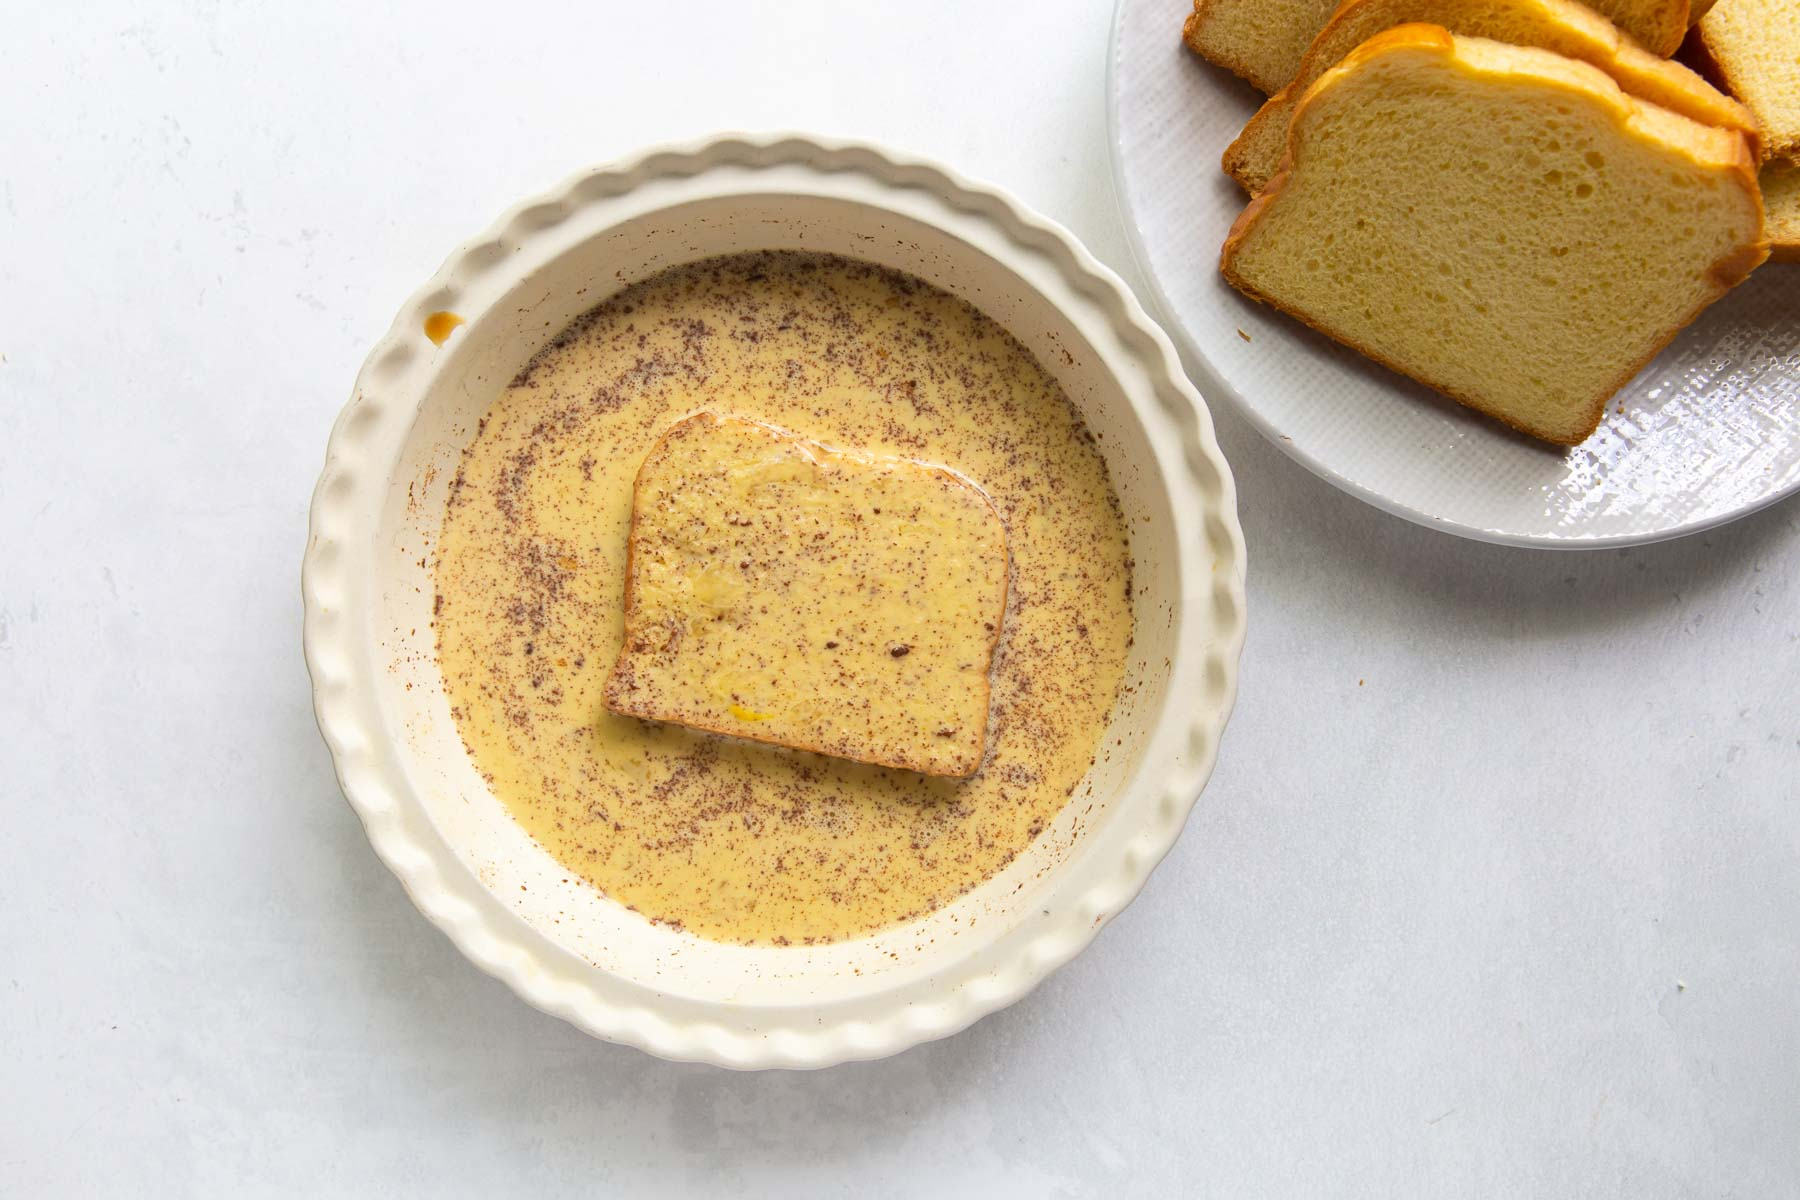 slice of bread soaking in French toast batter